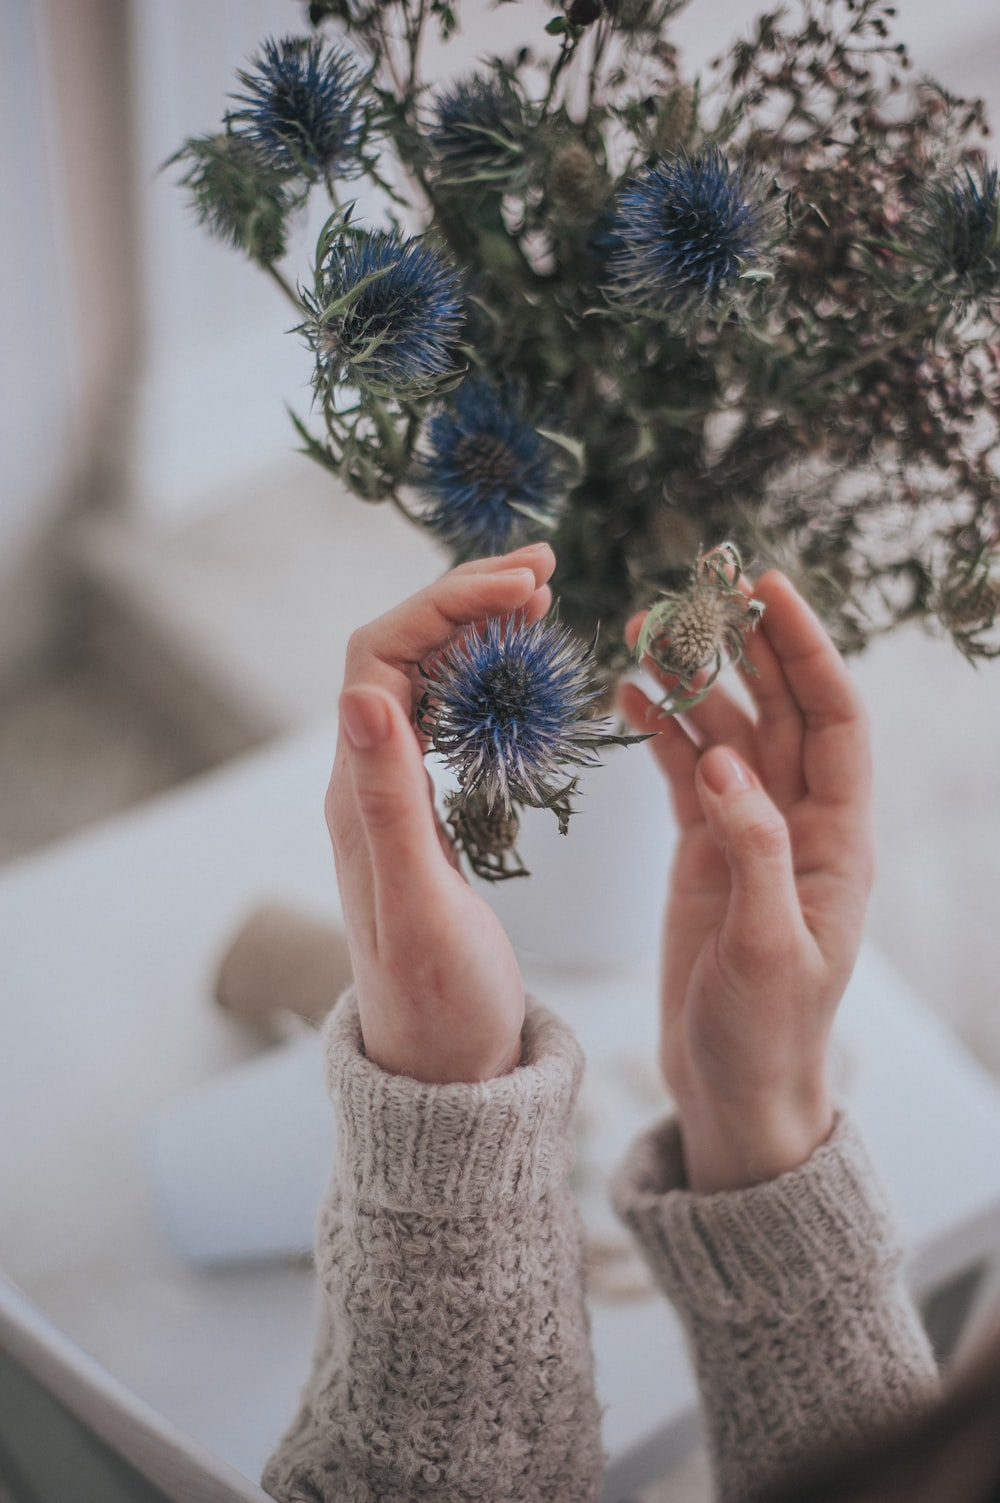 person holding green and blue plant